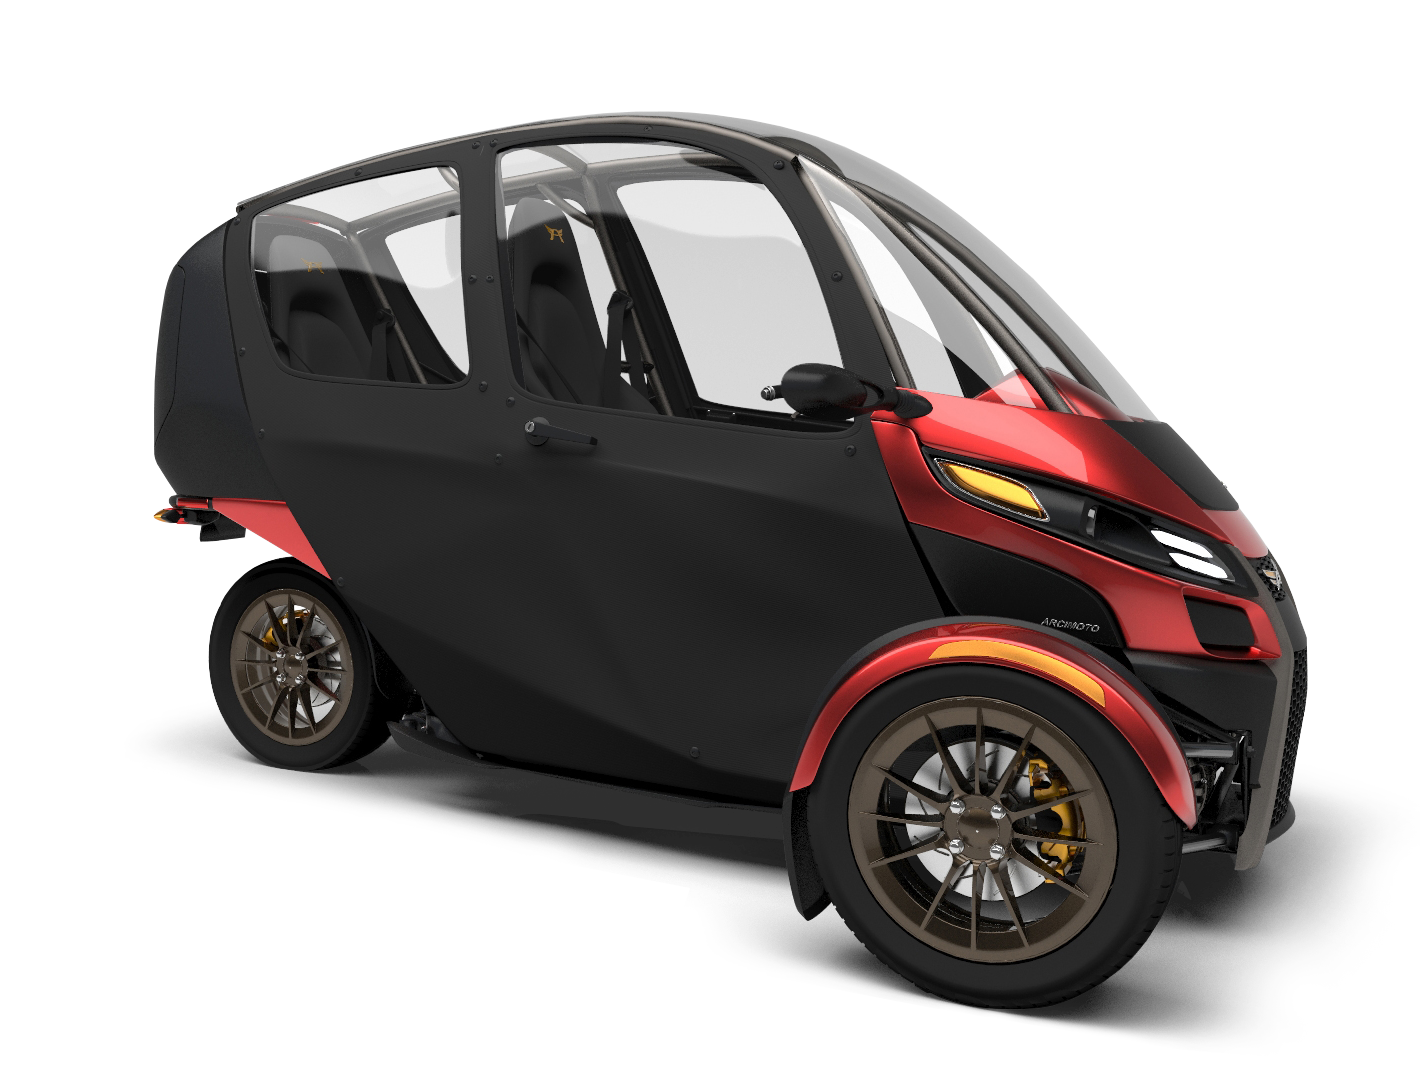 Arcimotos Eighth Generation SRK Three Wheeler Seems To Be One Of The Most Alluring Urban Commuting Solutions For Two Especially As It Comes With A Neat